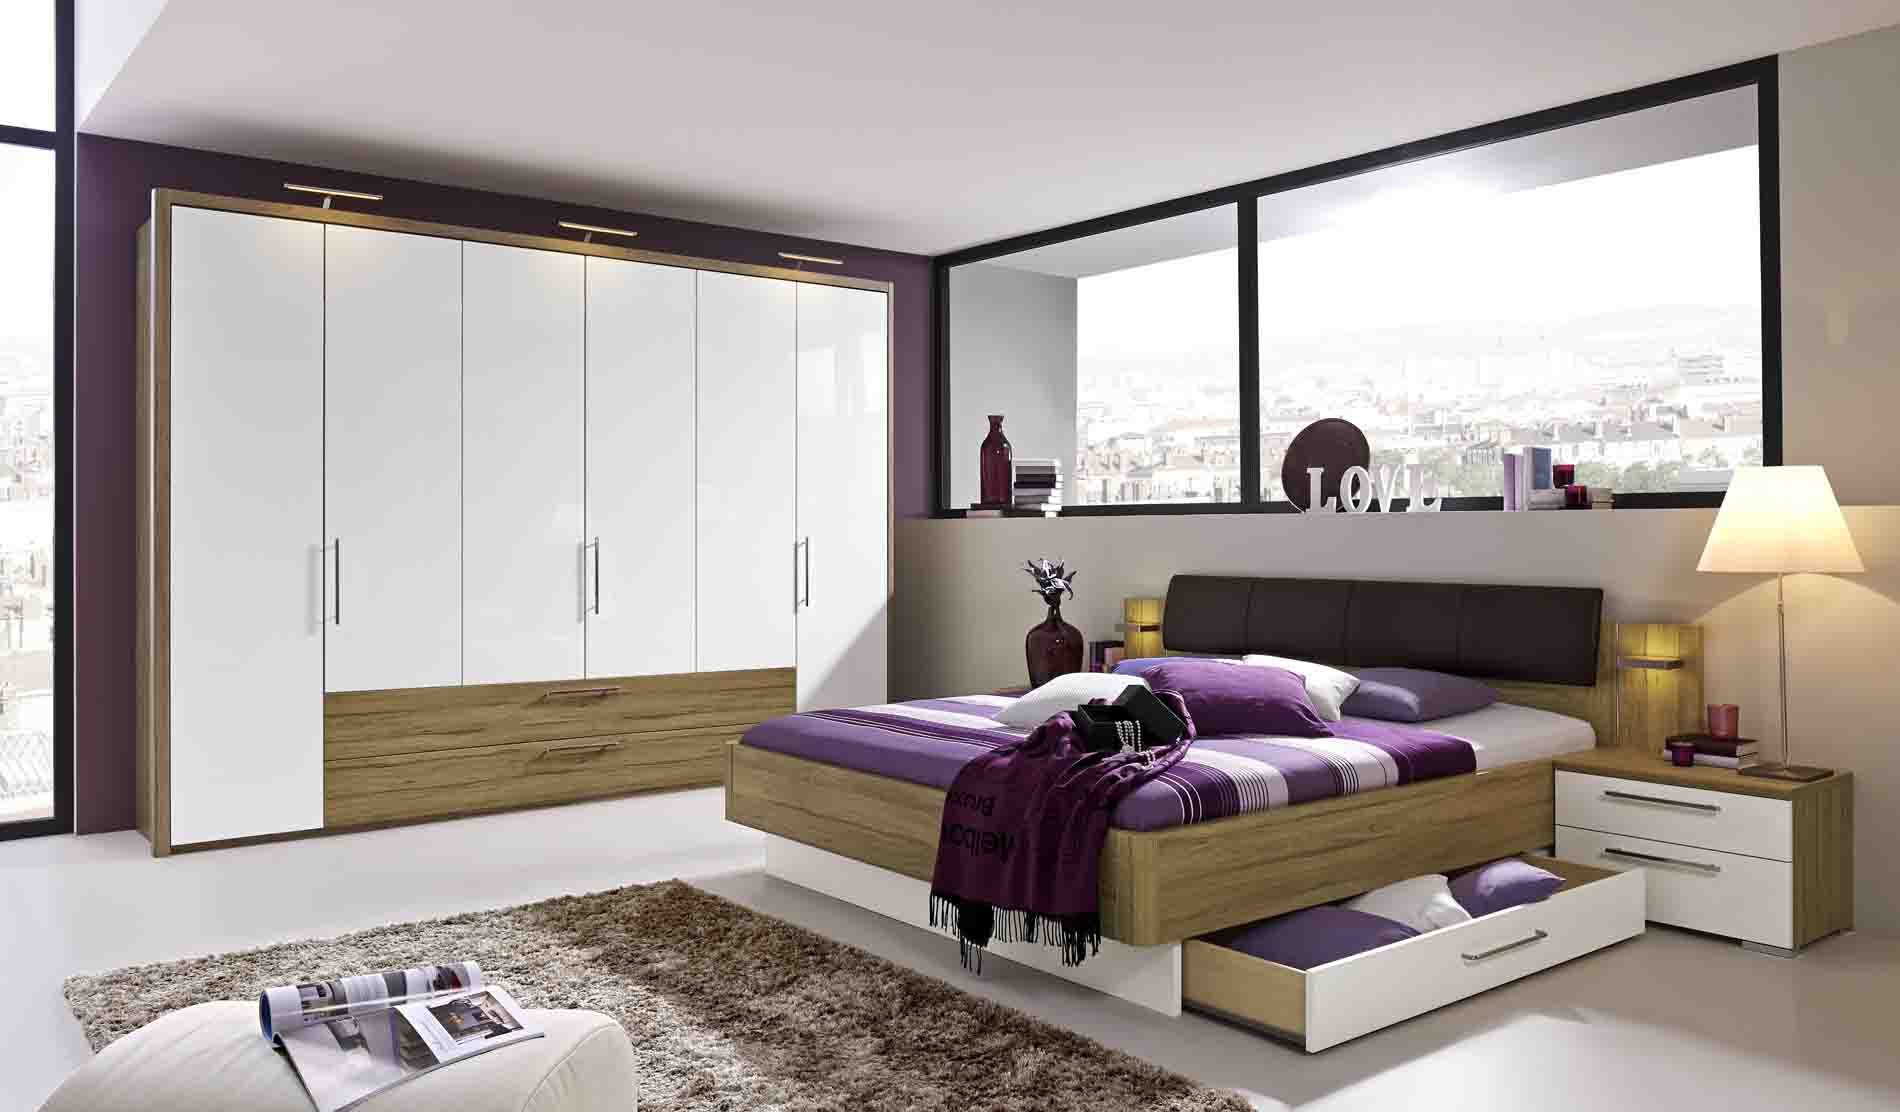 schlafzimmer zamaro mit schubladen massiva m. Black Bedroom Furniture Sets. Home Design Ideas